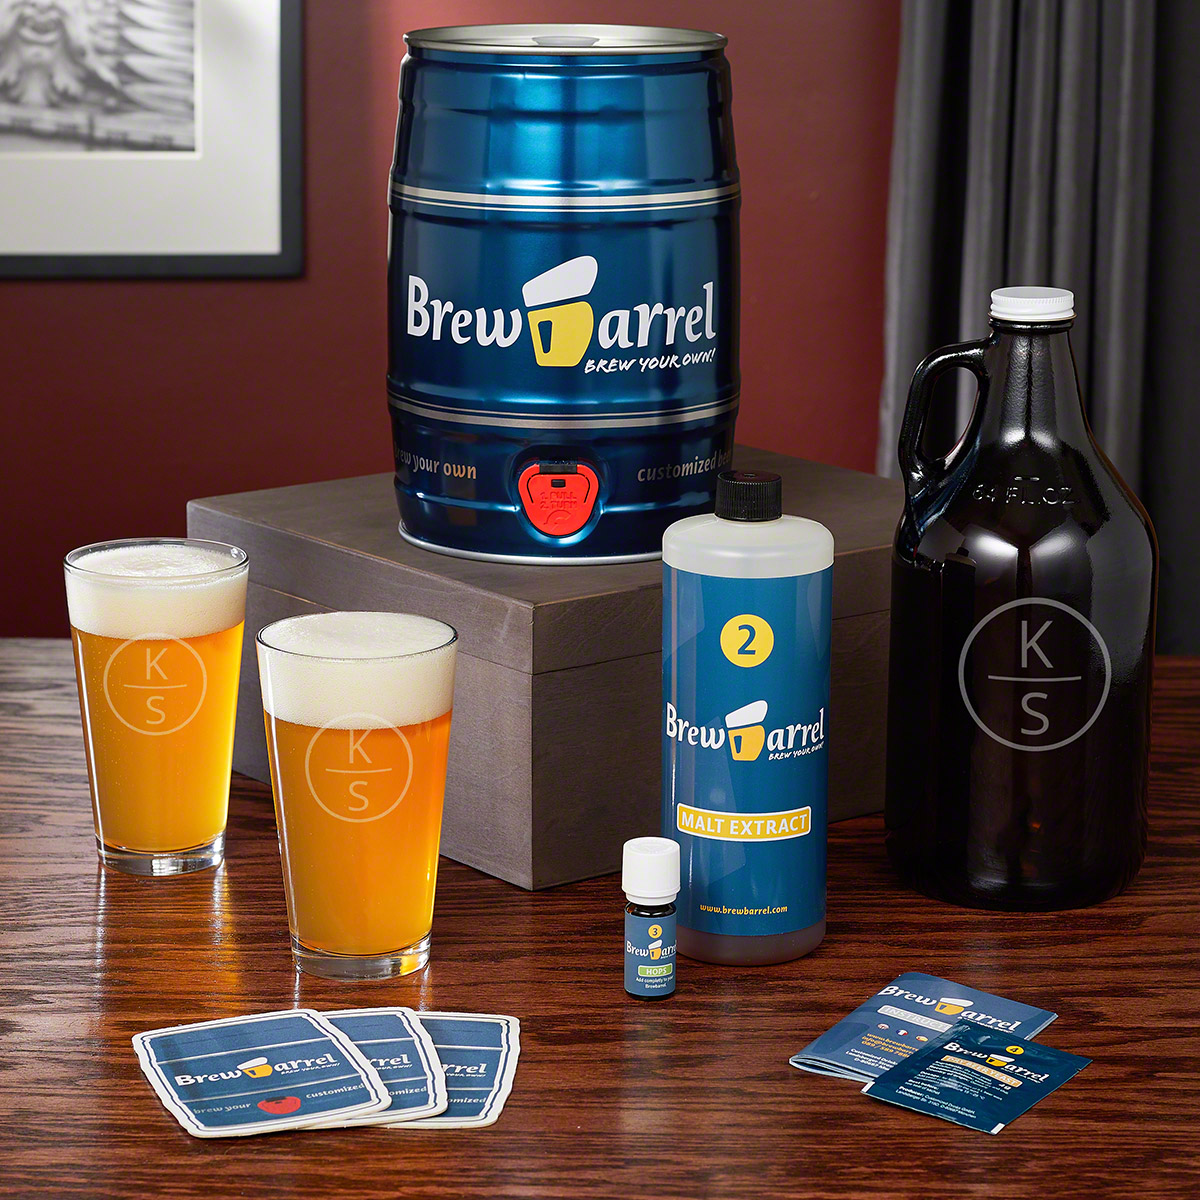 Emerson Personalized Glassware and Brew Barrel Craft Brew Kit